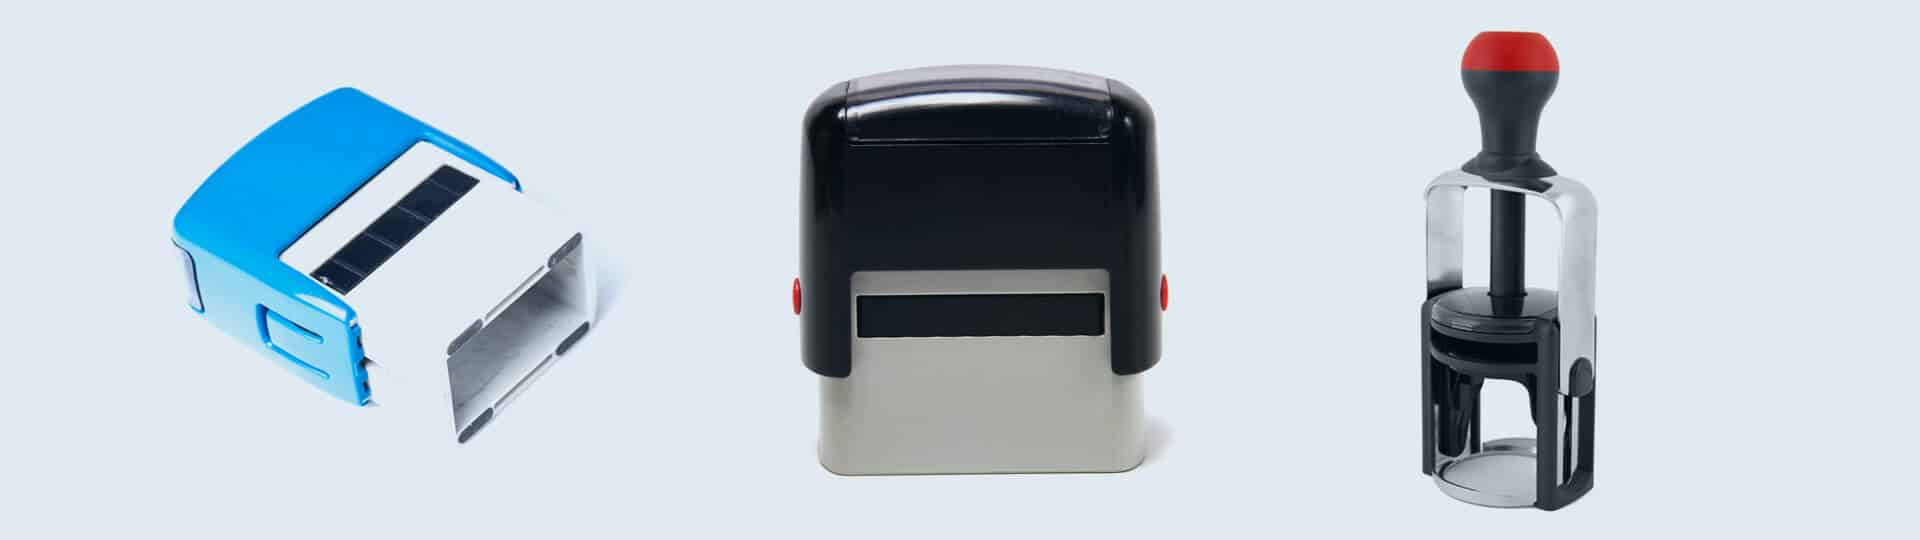 custom stamps and engraving service, My Office Etc.